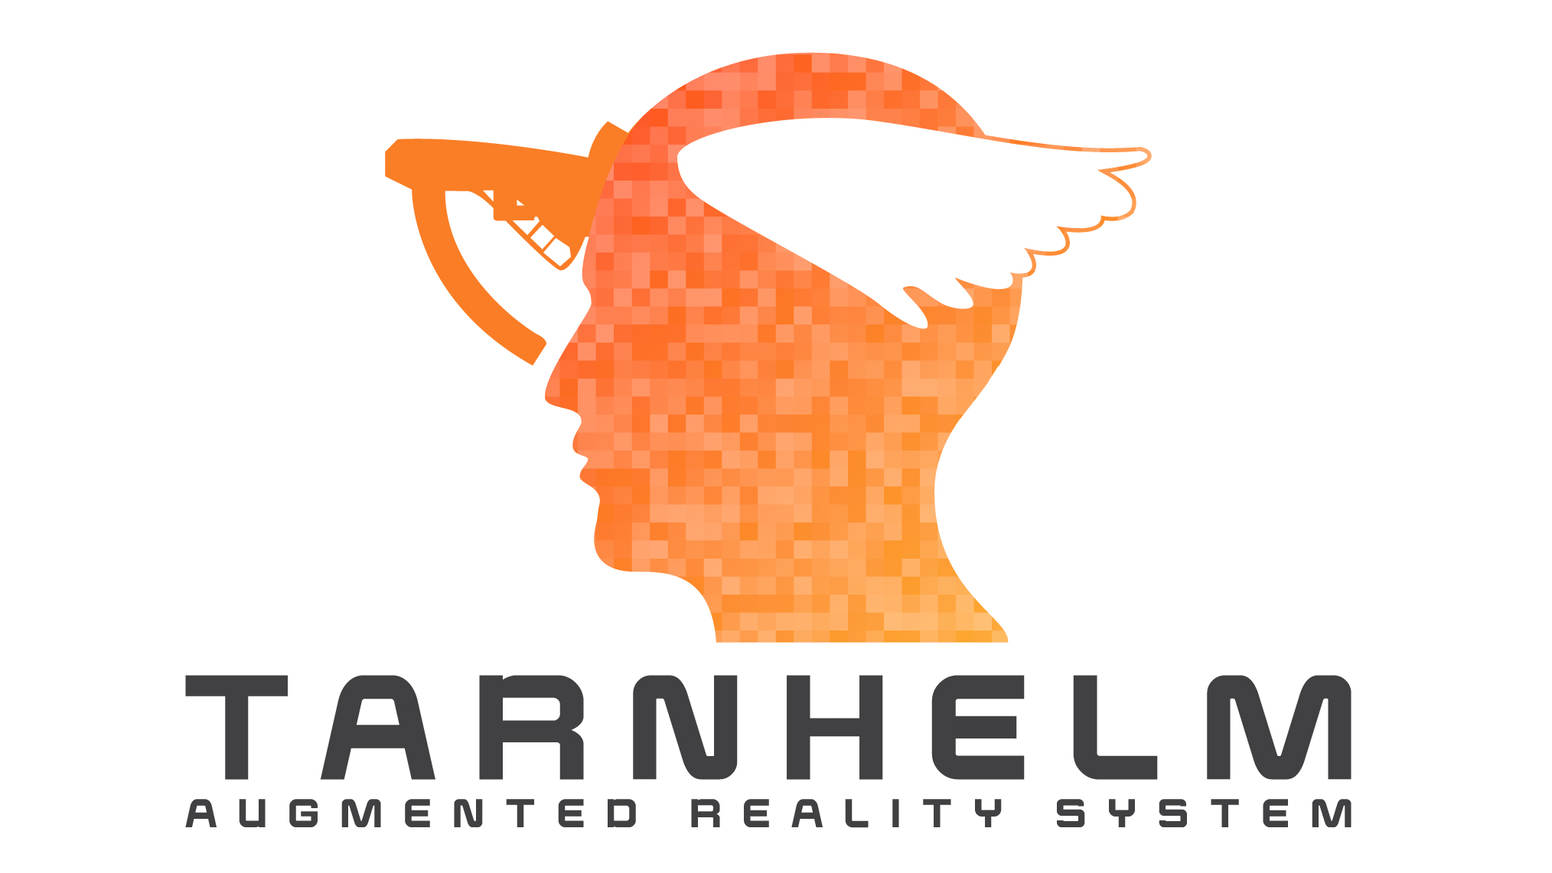 c222399c2ed Tarnhelm Augmented Reality System - Virtual Reality